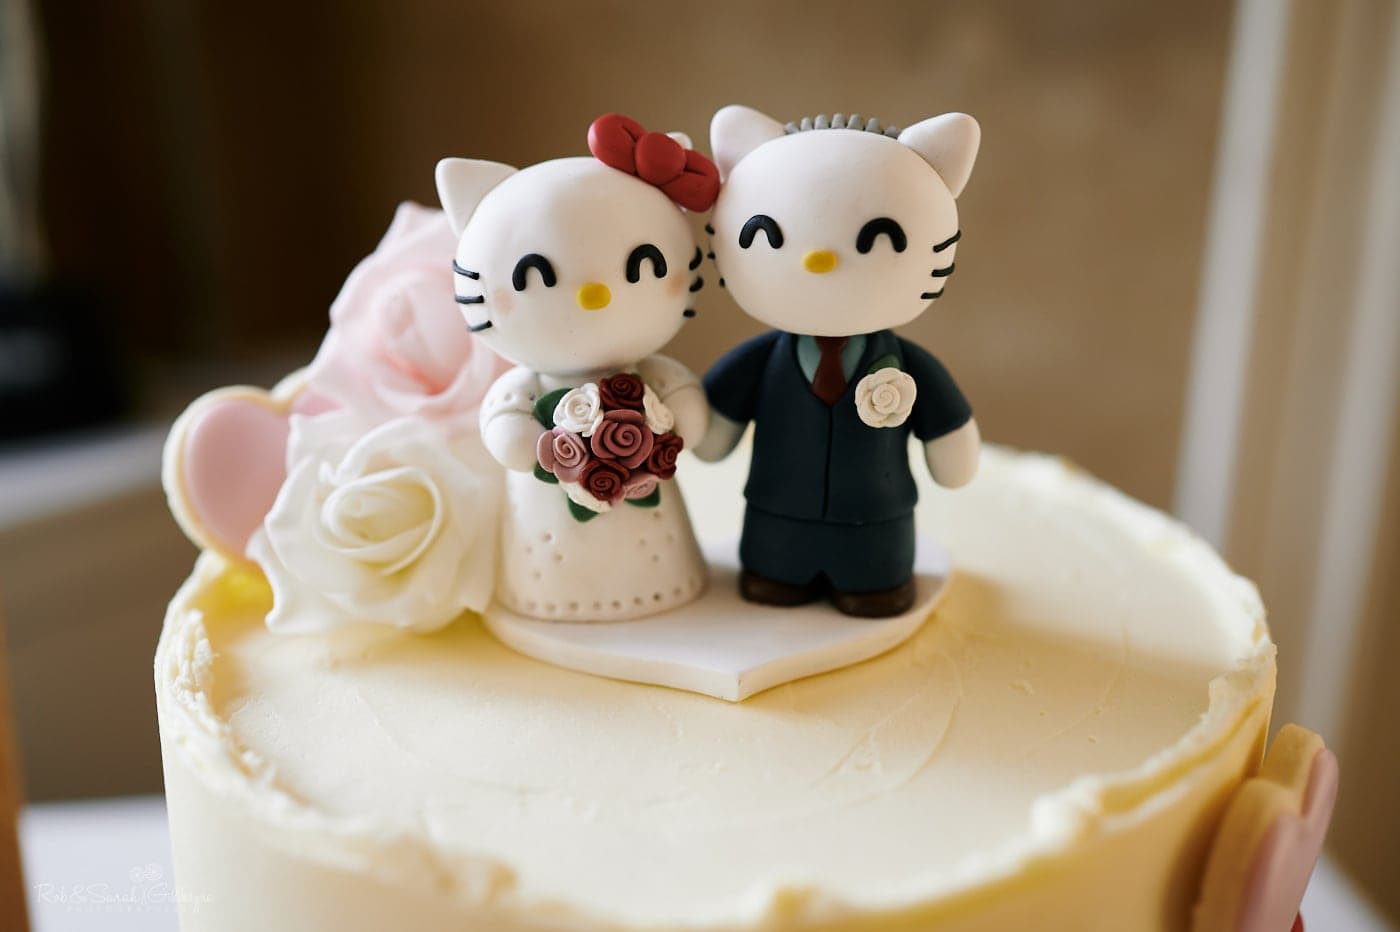 Cake topper on wedding cake in Hello Kitty style